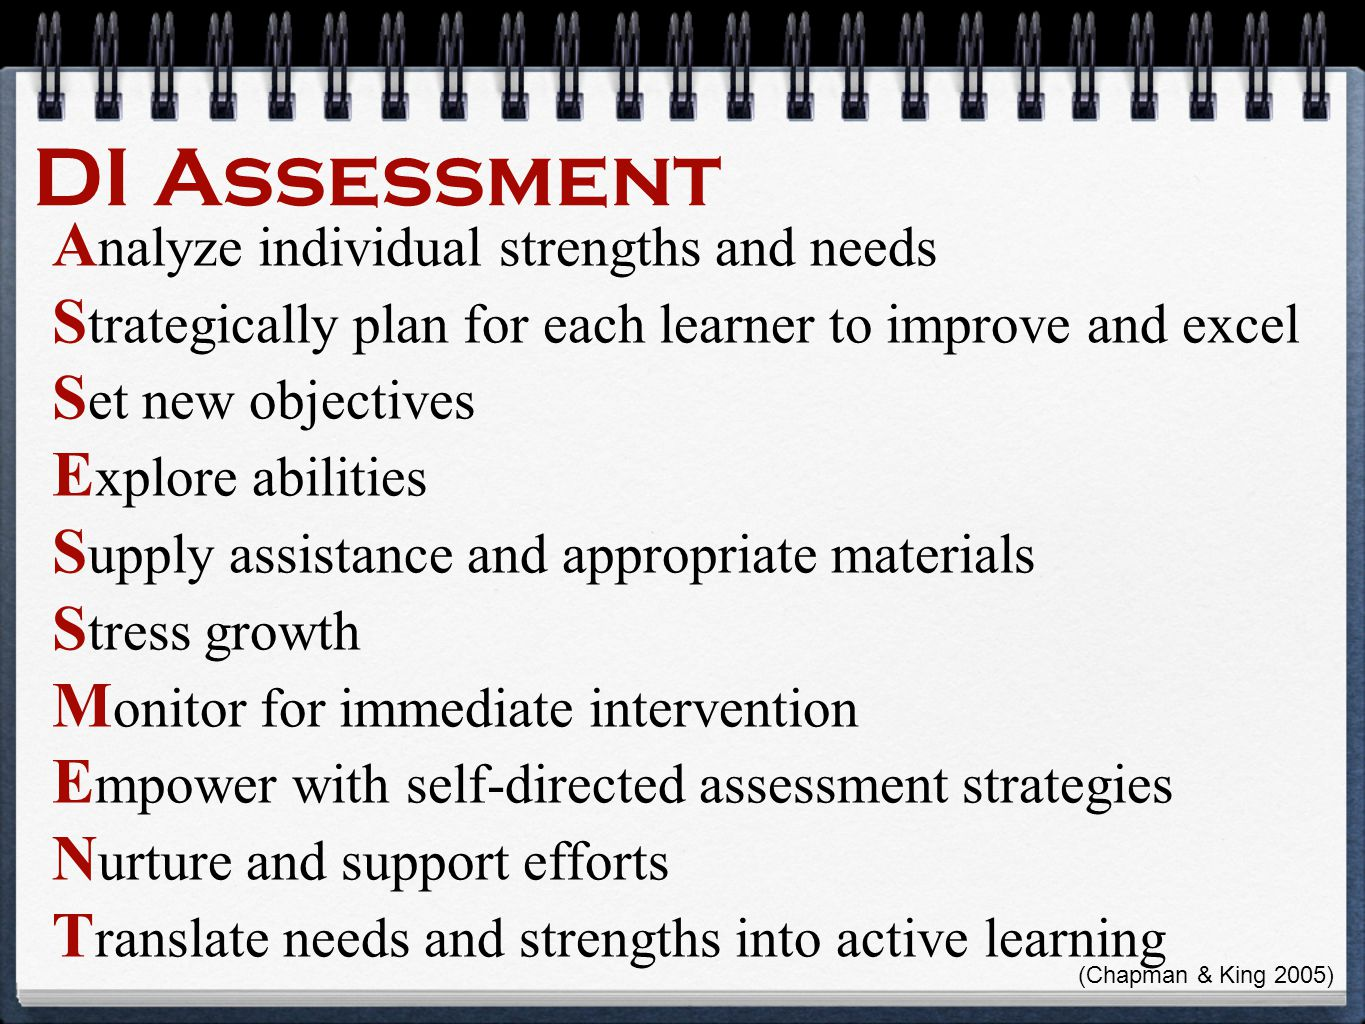 DI Assessment A nalyze individual strengths and needs S trategically plan for each learner to improve and excel S et new objectives E xplore abilities S upply assistance and appropriate materials S tress growth M onitor for immediate intervention E mpower with self-directed assessment strategies N urture and support efforts T ranslate needs and strengths into active learning (Chapman & King 2005)